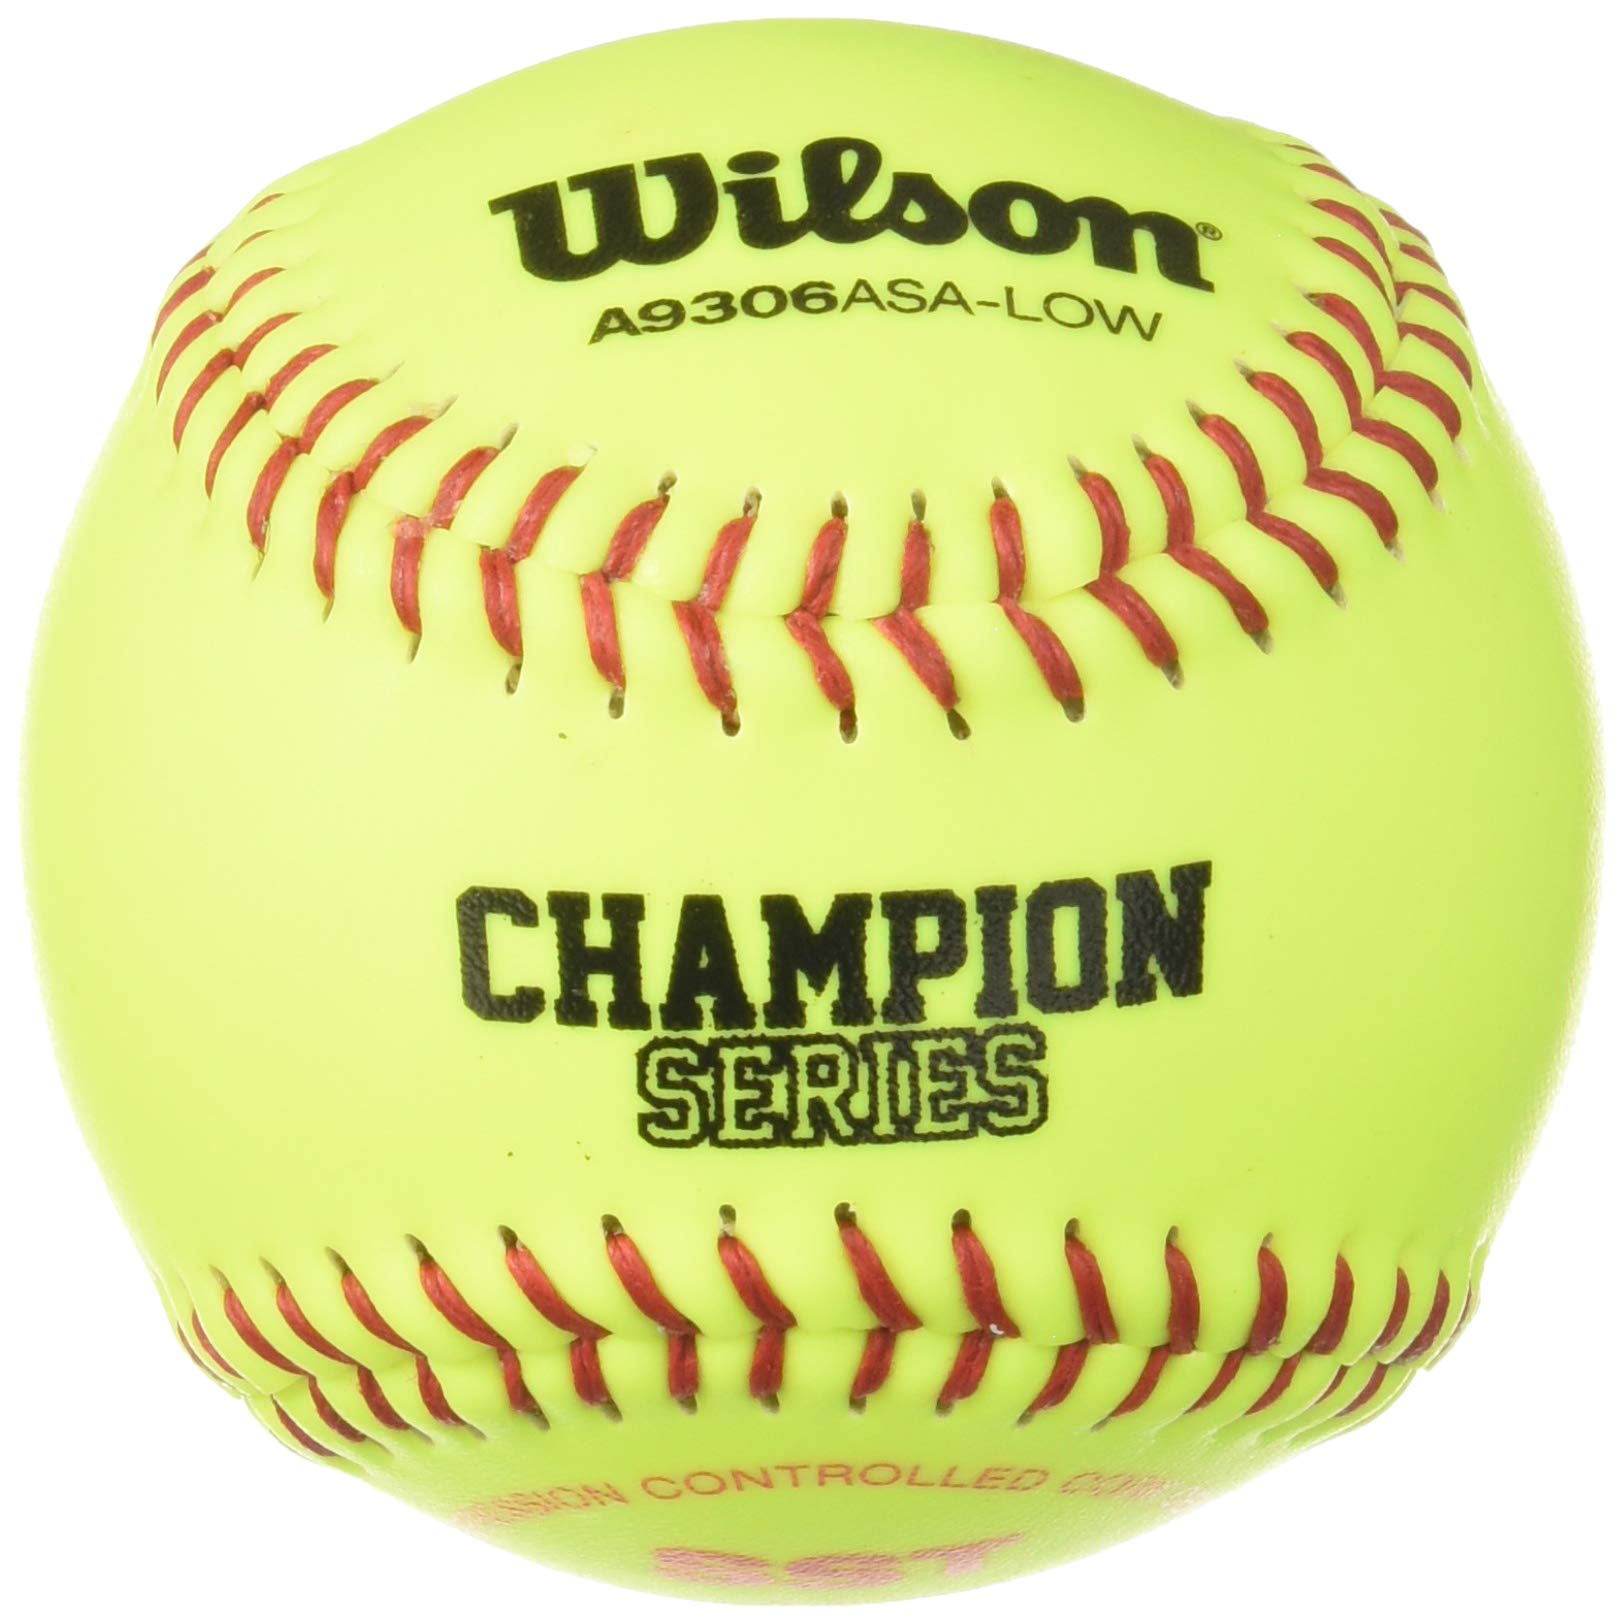 Wilson A9306 ASA Series Softball (12-Pack), 11-Inch, Optic Yellow by Wilson (Image #1)